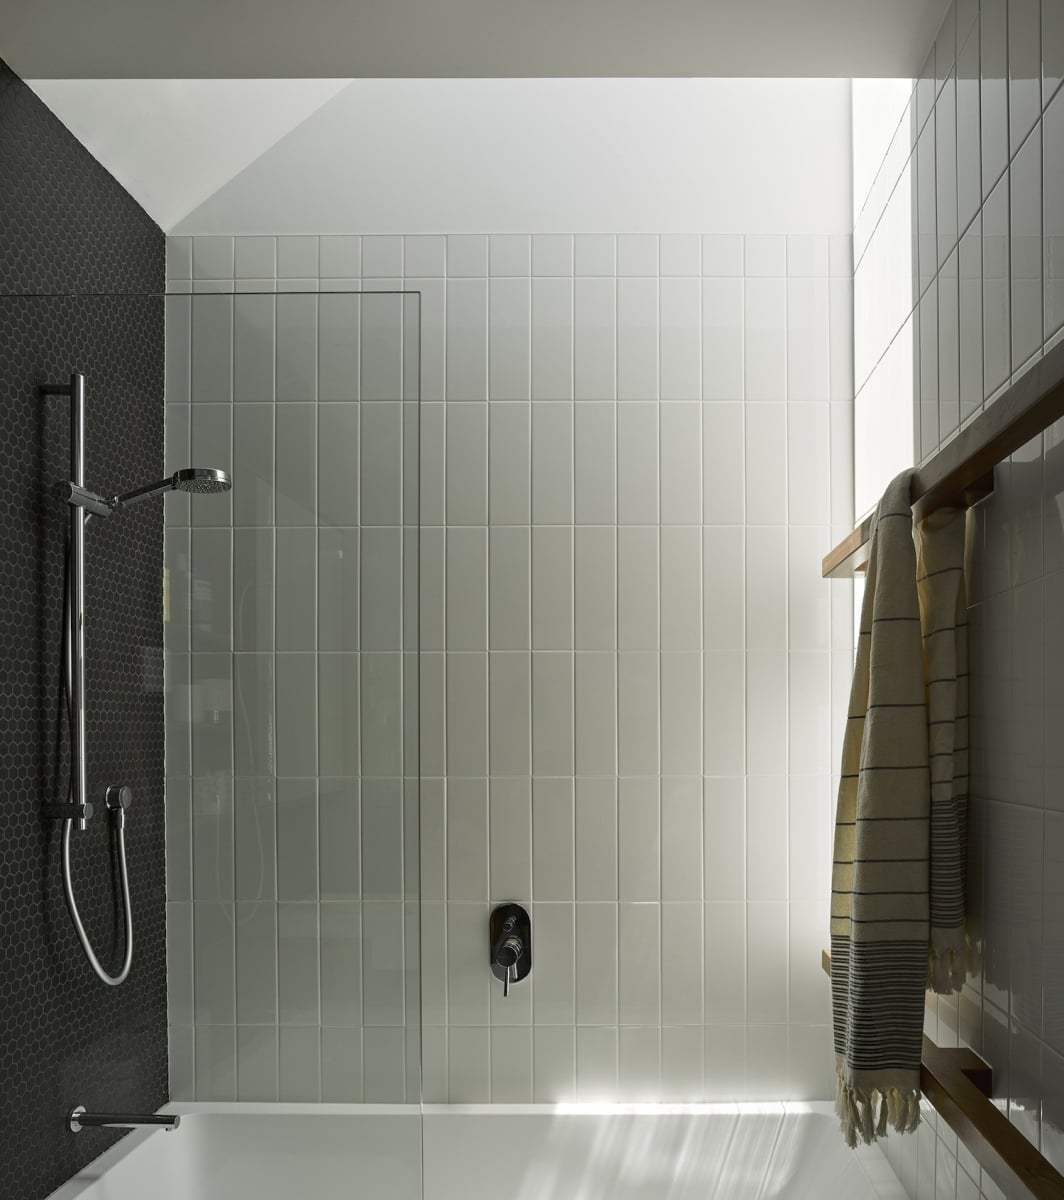 The black and white bathroom features an angled ceiling